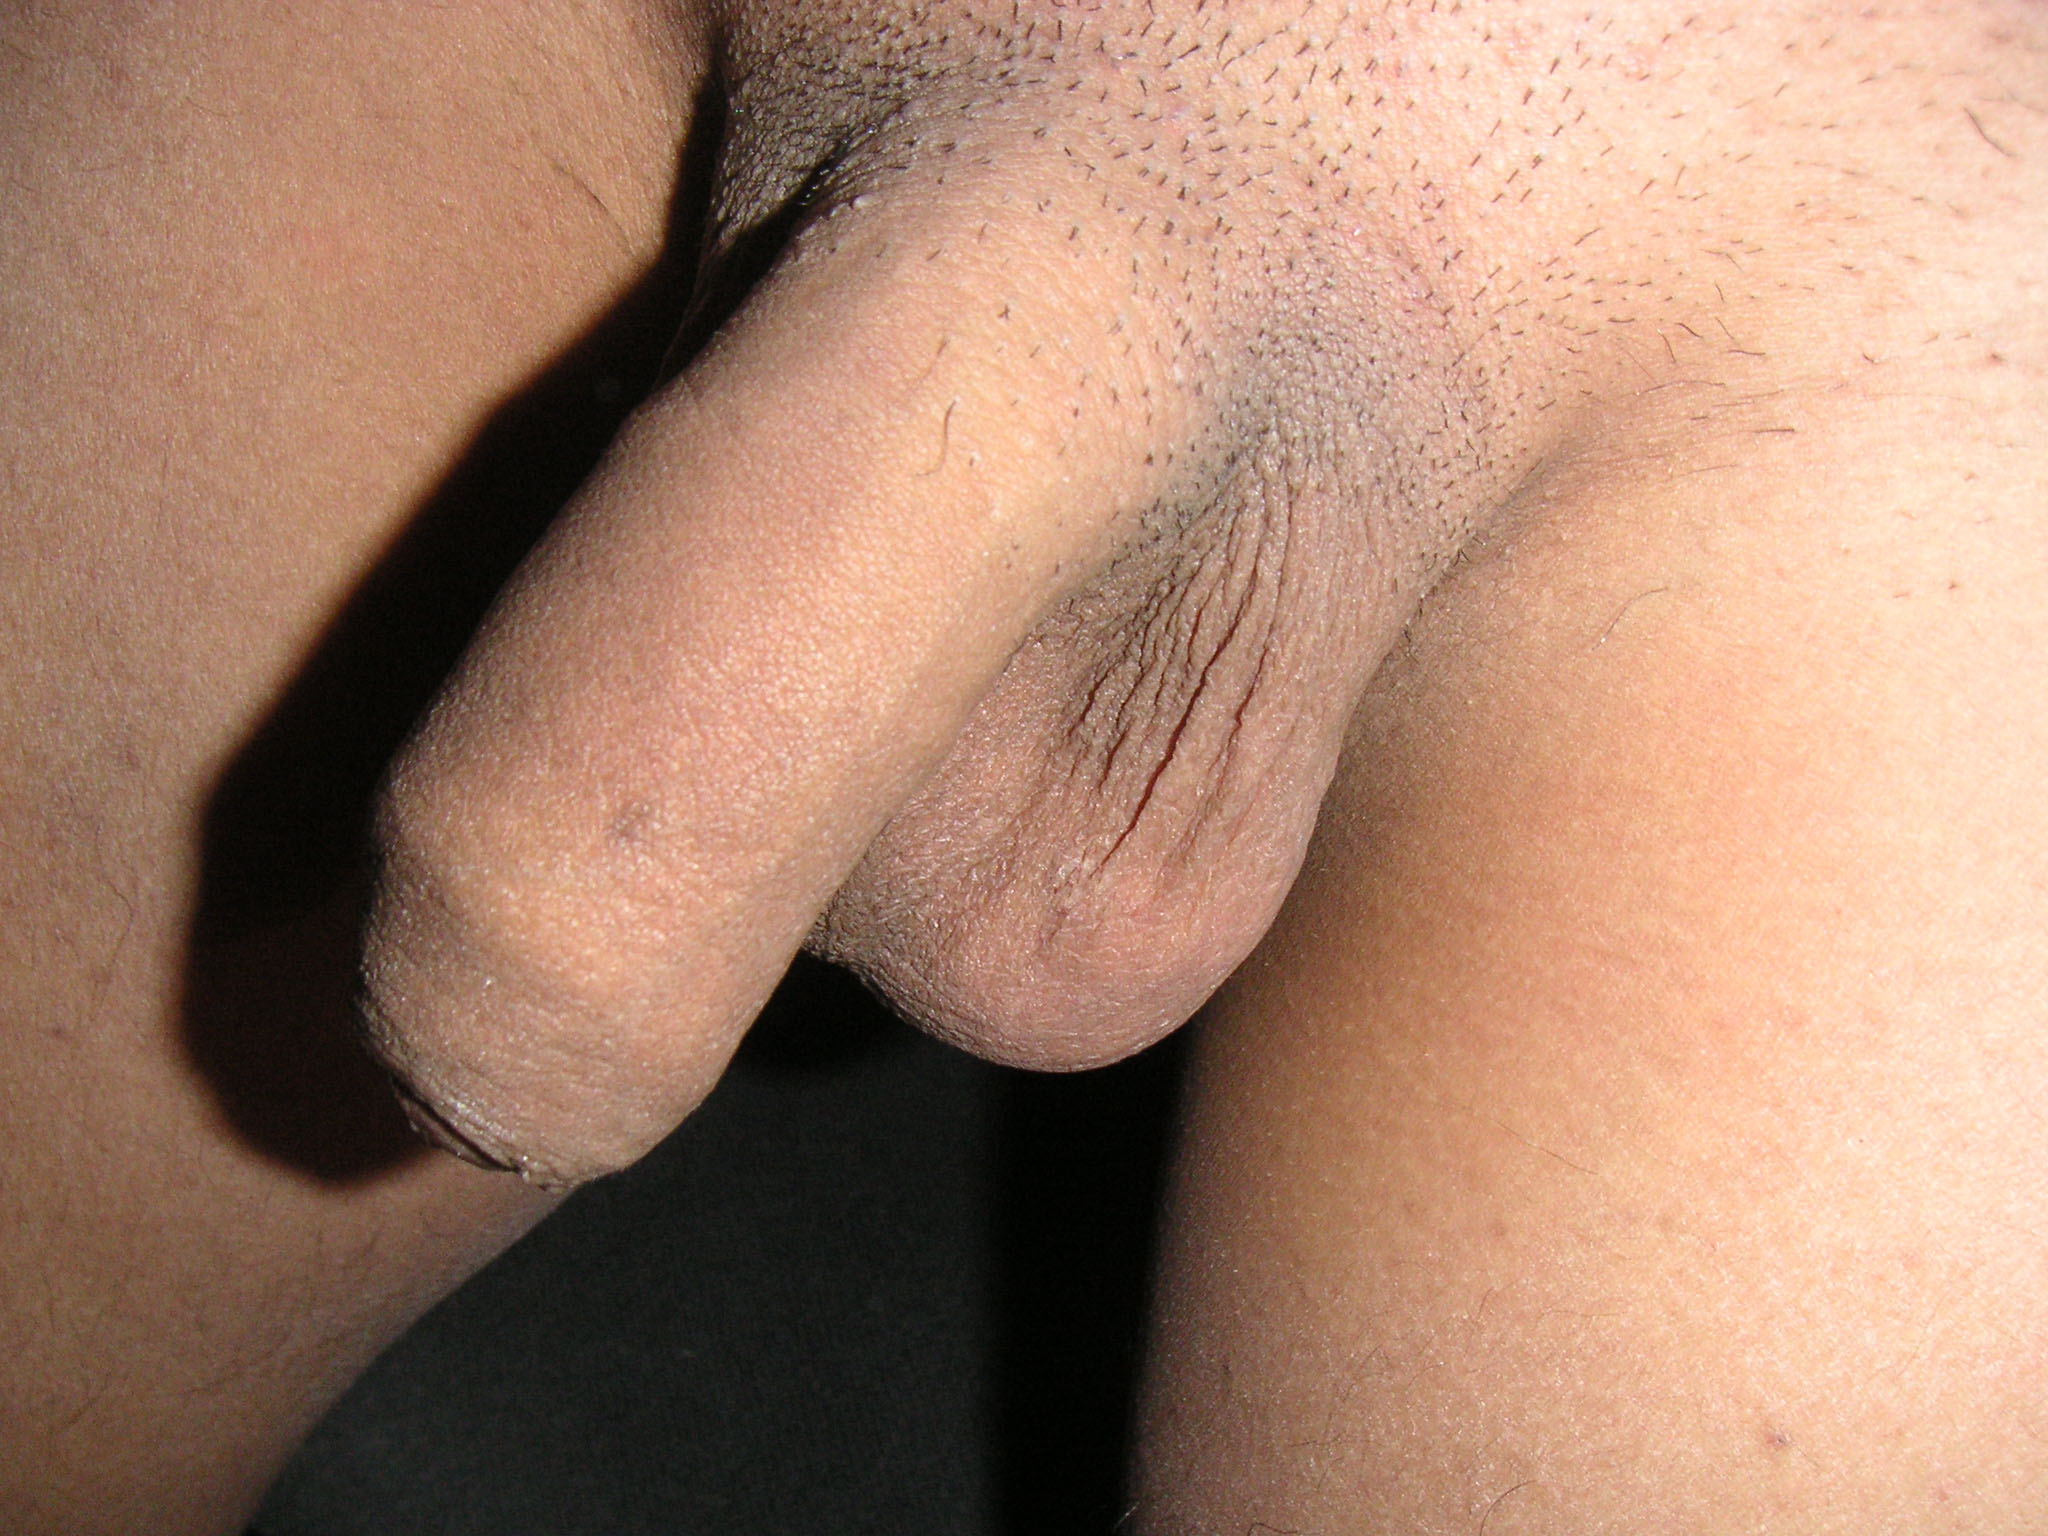 Image girl touch boy penis